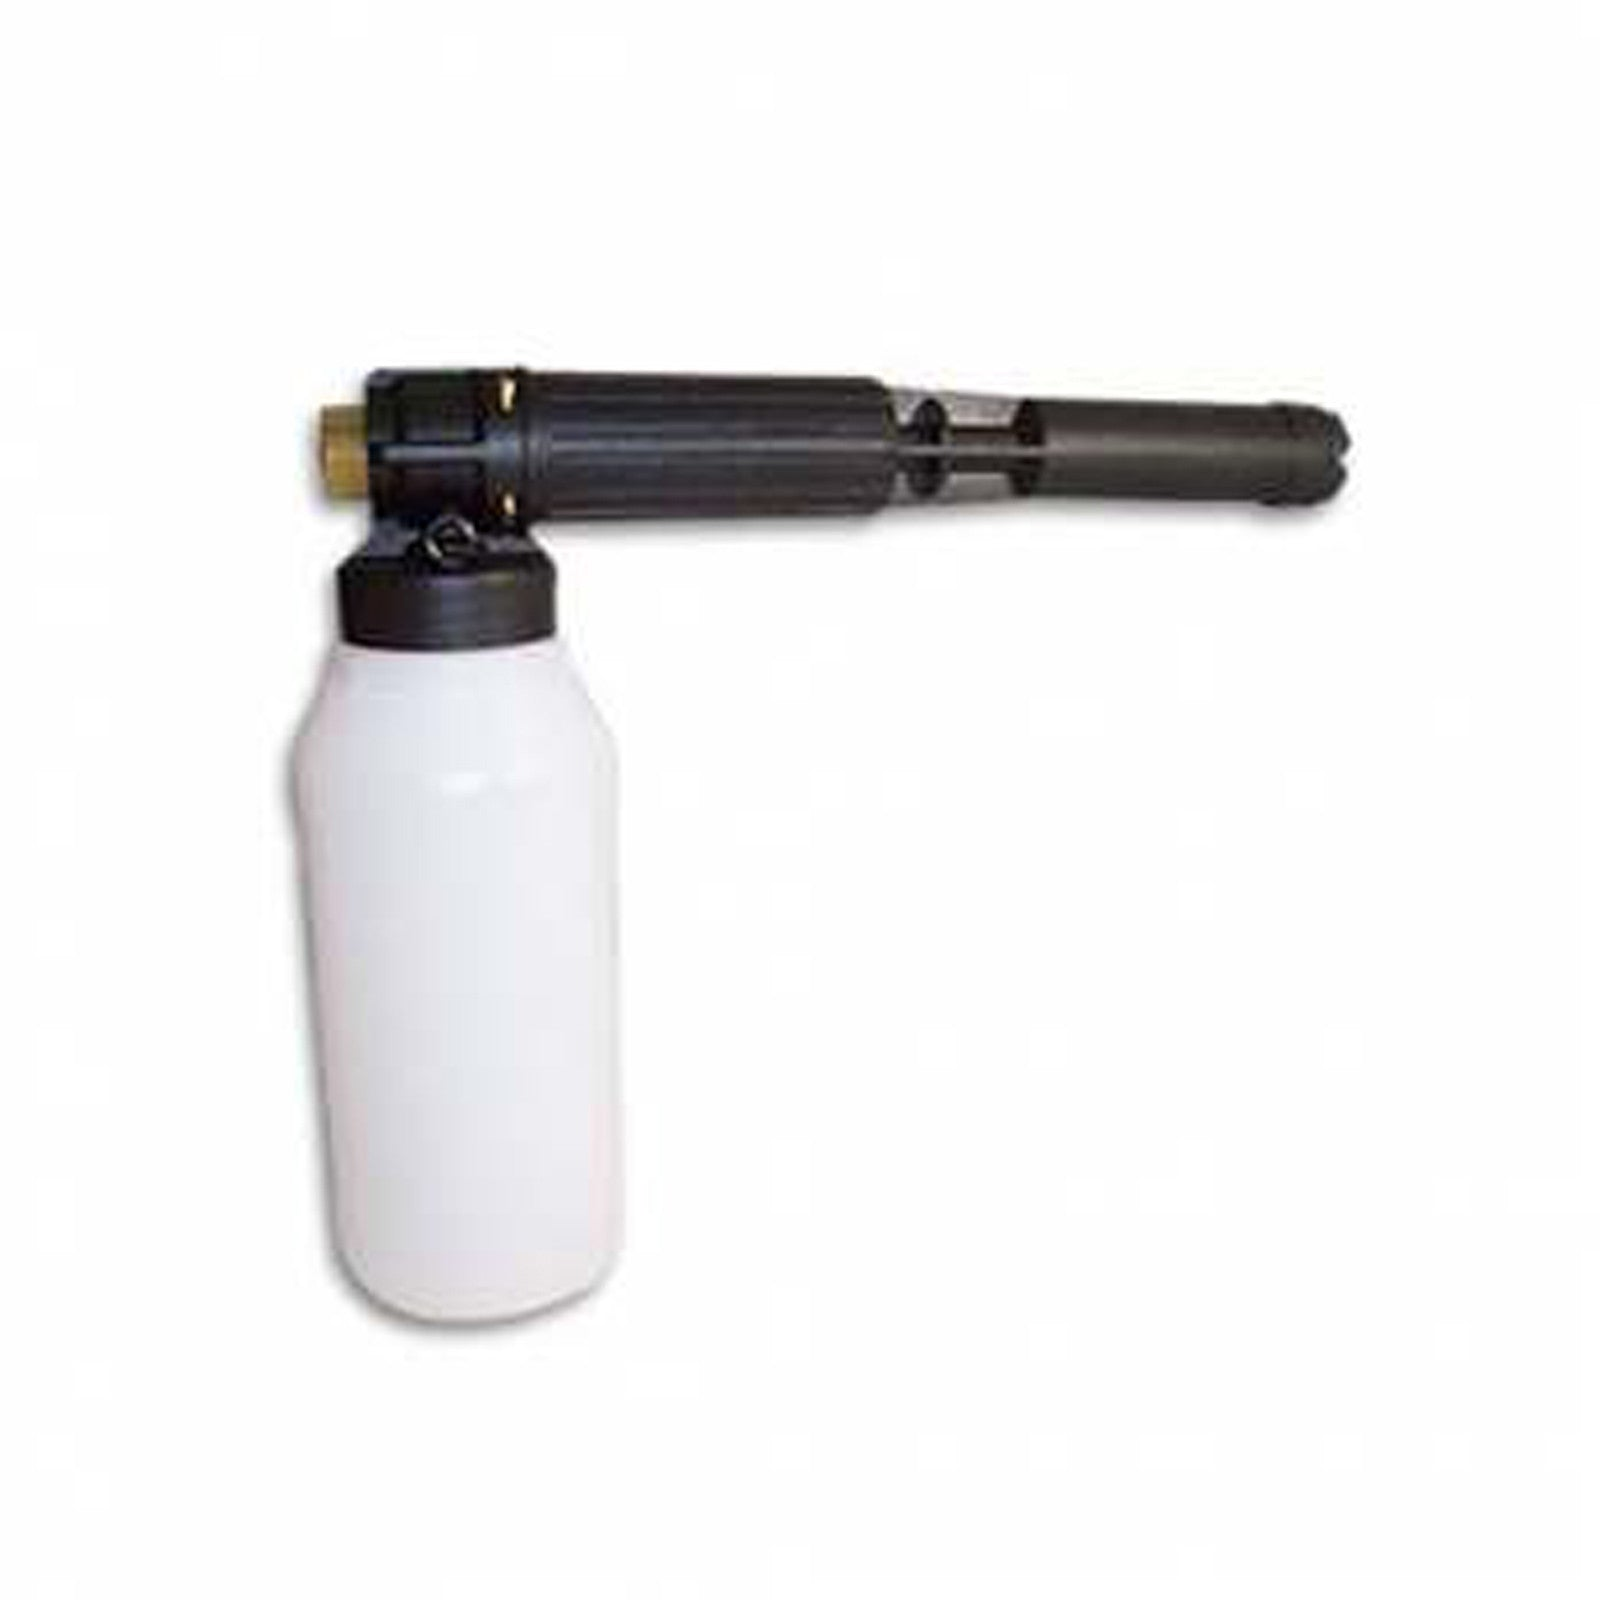 LS12 Foam Cannon with Bottle 3200psi